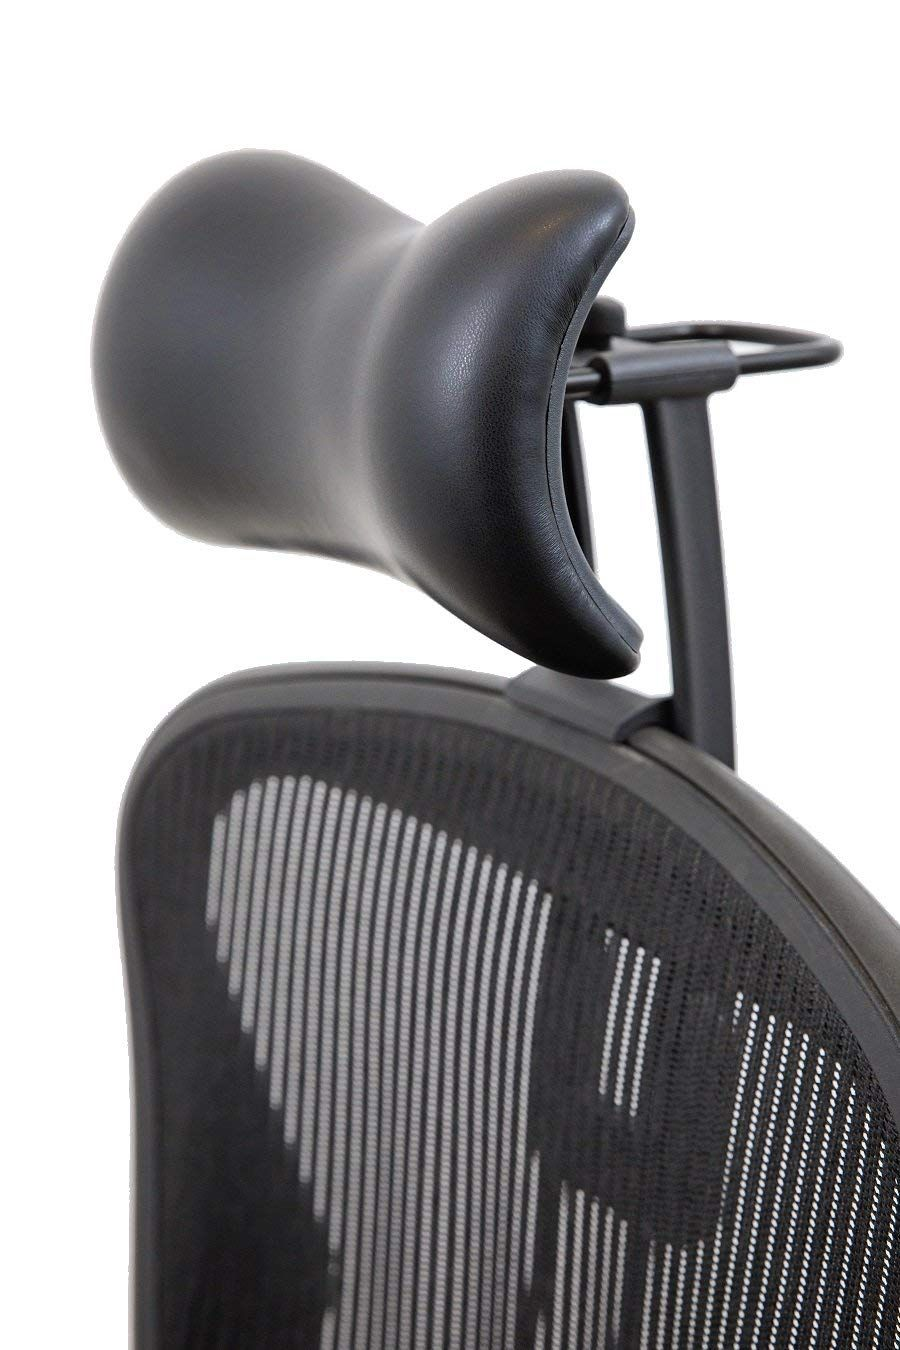 Special Offers Atlas Headrest For Herman Miller Aeron Chair Synthetic Leather In Stock Free Sh In 2020 Headrest Furniture Design Modern Herman Miller Aeron Chair